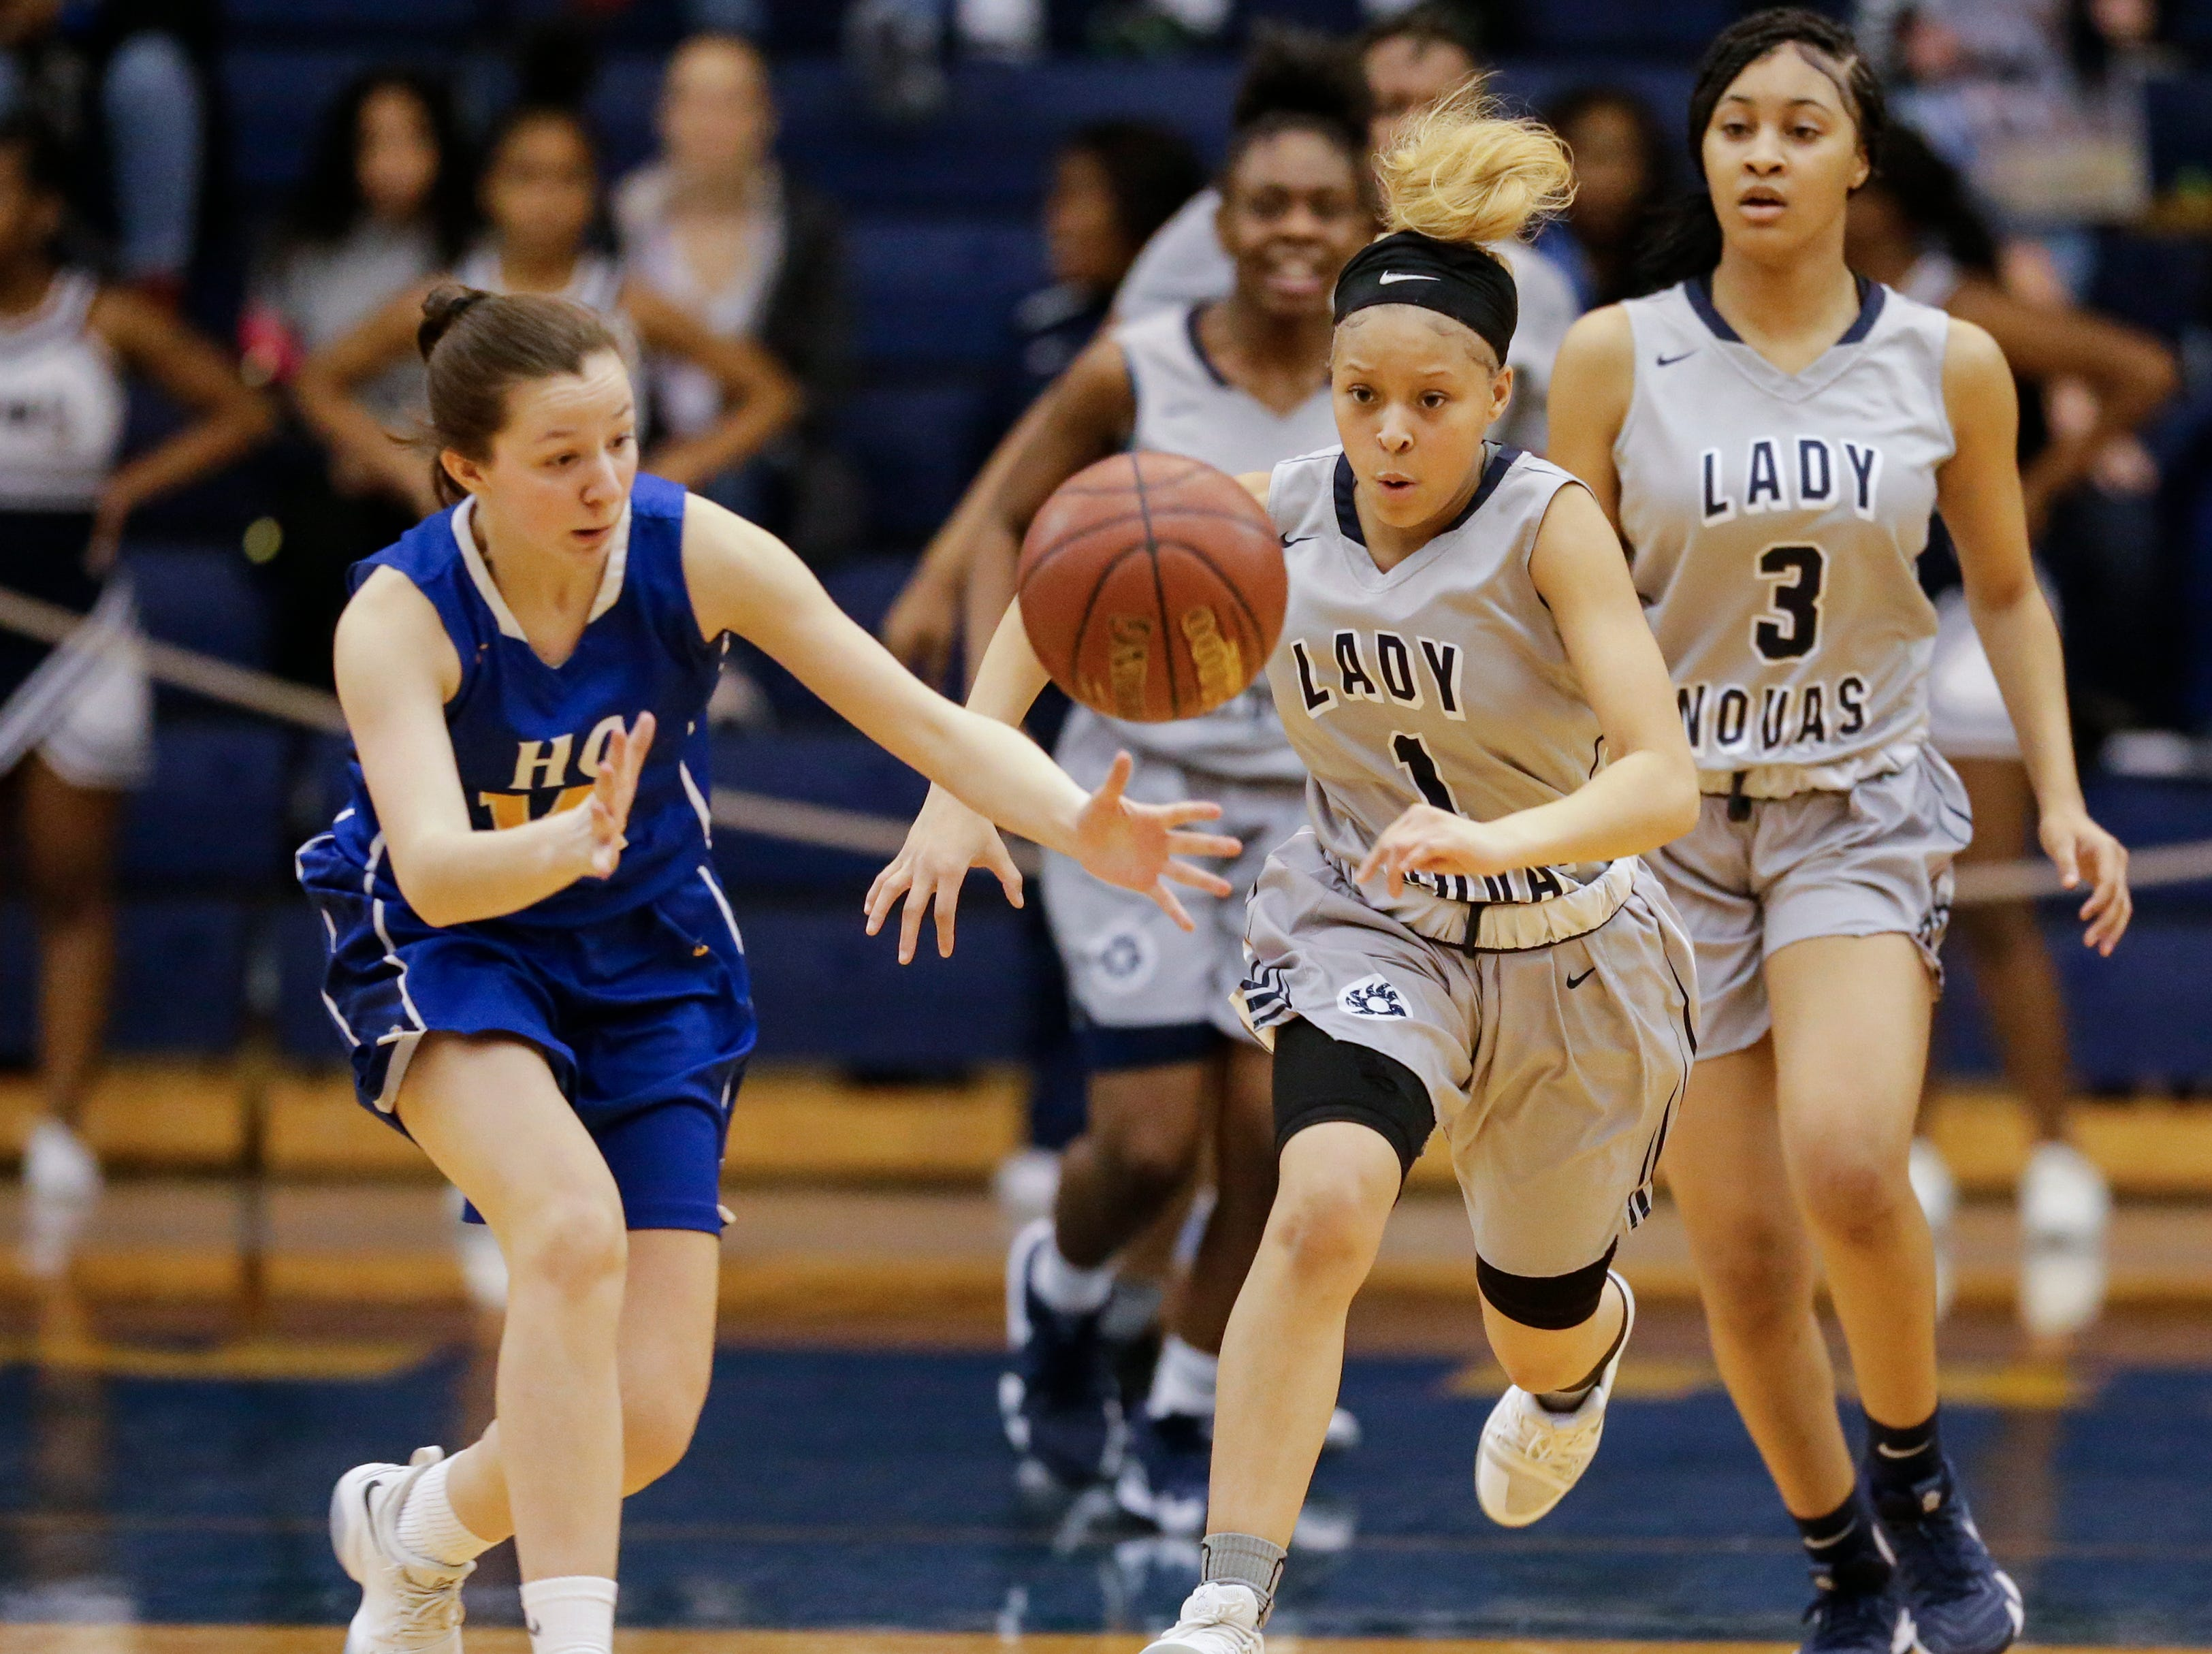 Howards Grove's Riley Jahnke (14) and Milwaukee Academy of Science's DayJanae Bivins (1) race to a loose ball during a WIAA Division 4 sectional championship game at Sheboygan North High School Saturday, March 2, 2019, in Sheboygan, Wis. Joshua Clark/USA TODAY NETWORK-Wisconsin